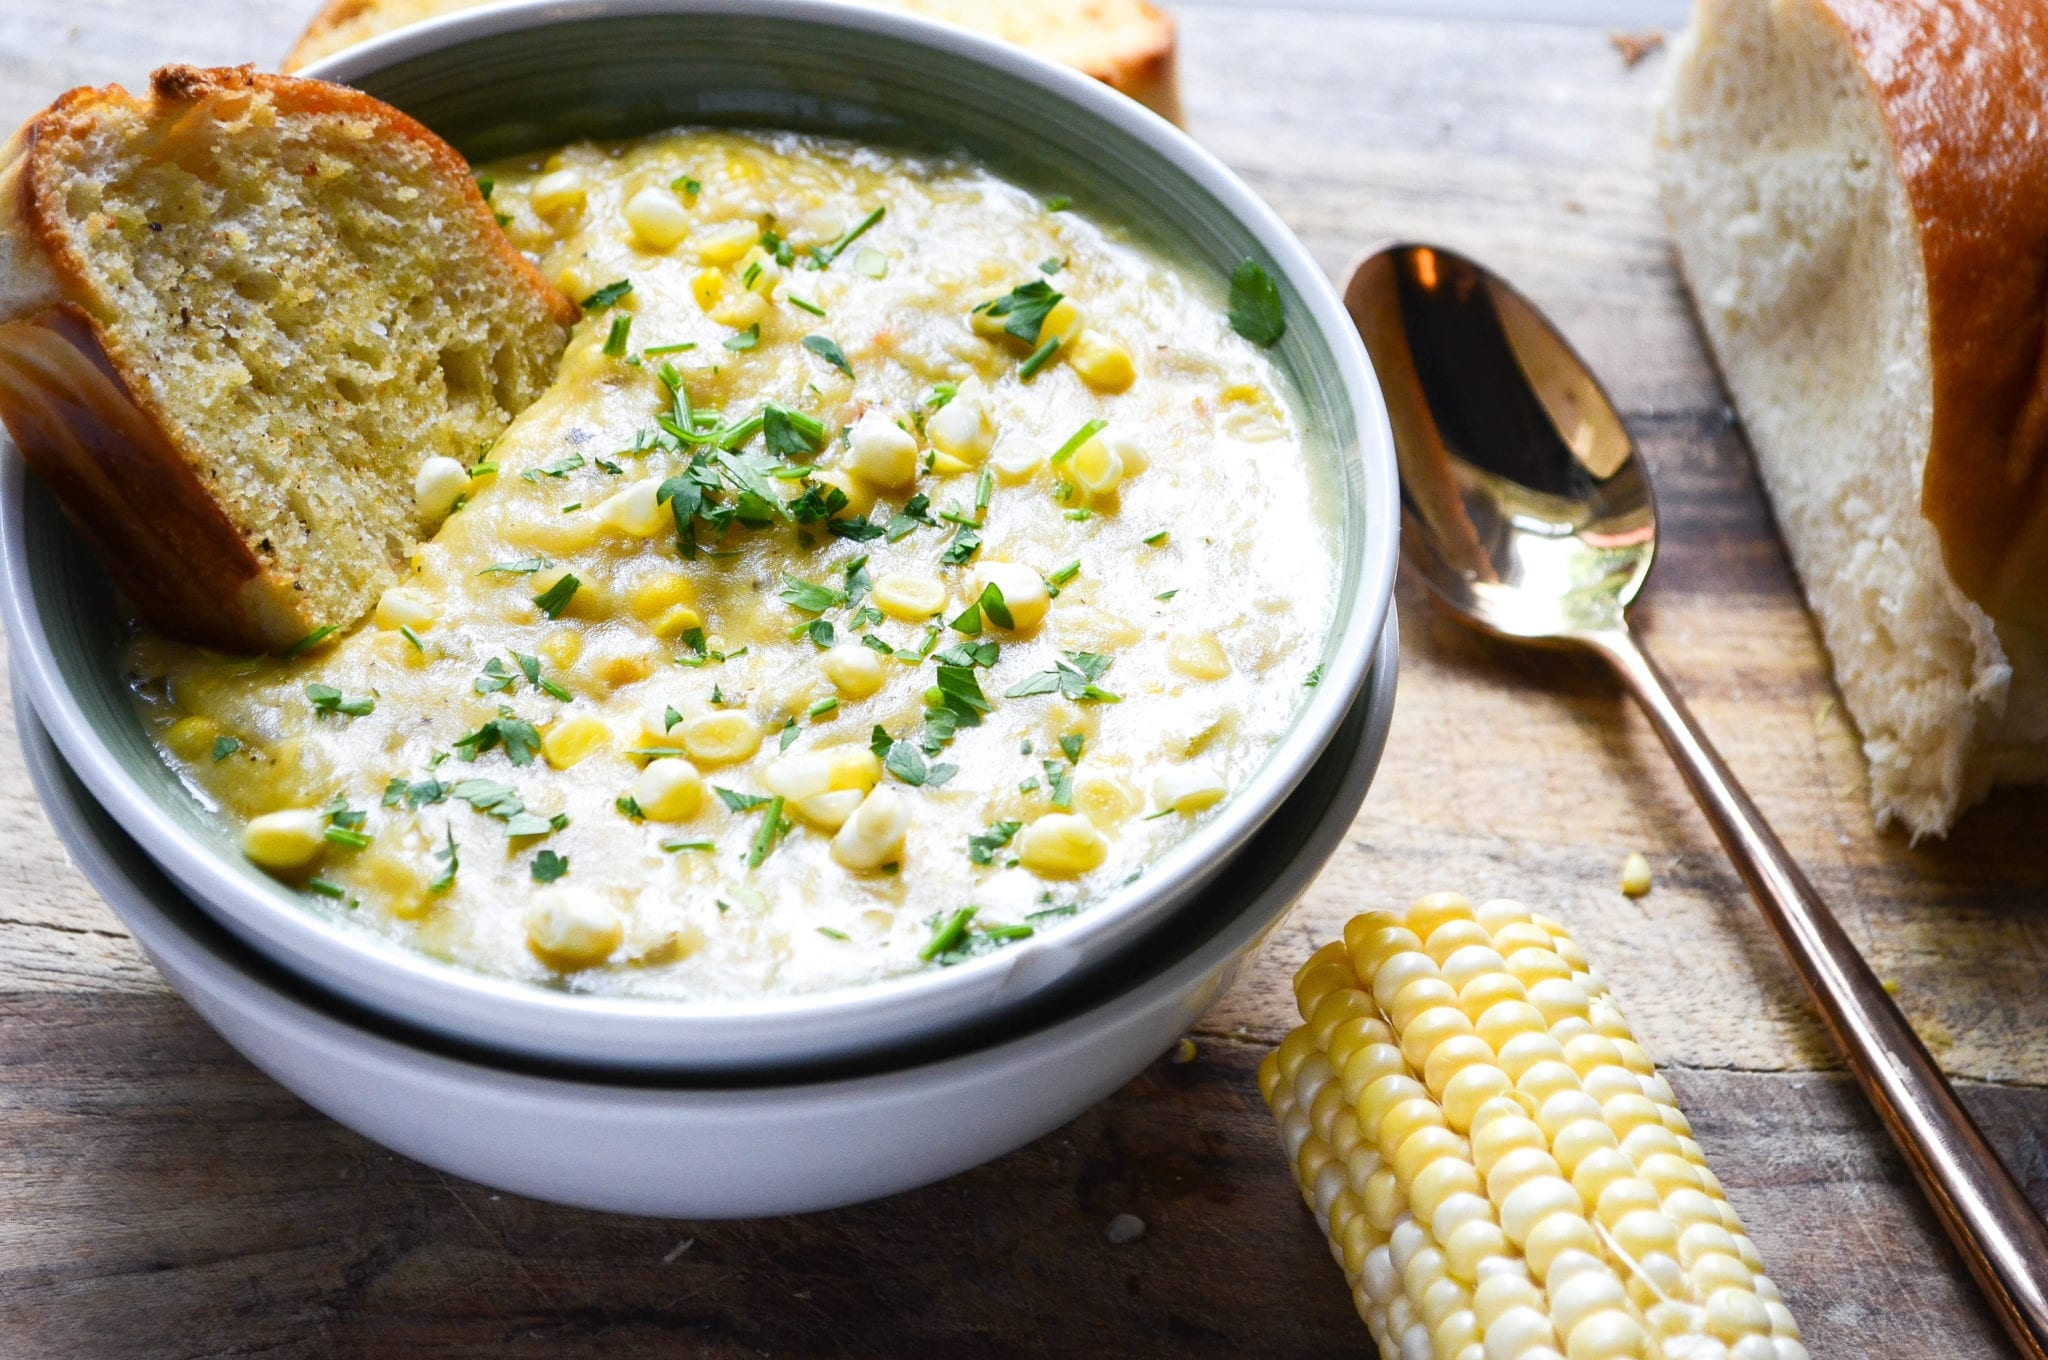 Creamy Corn Chowder With Goat Cheese